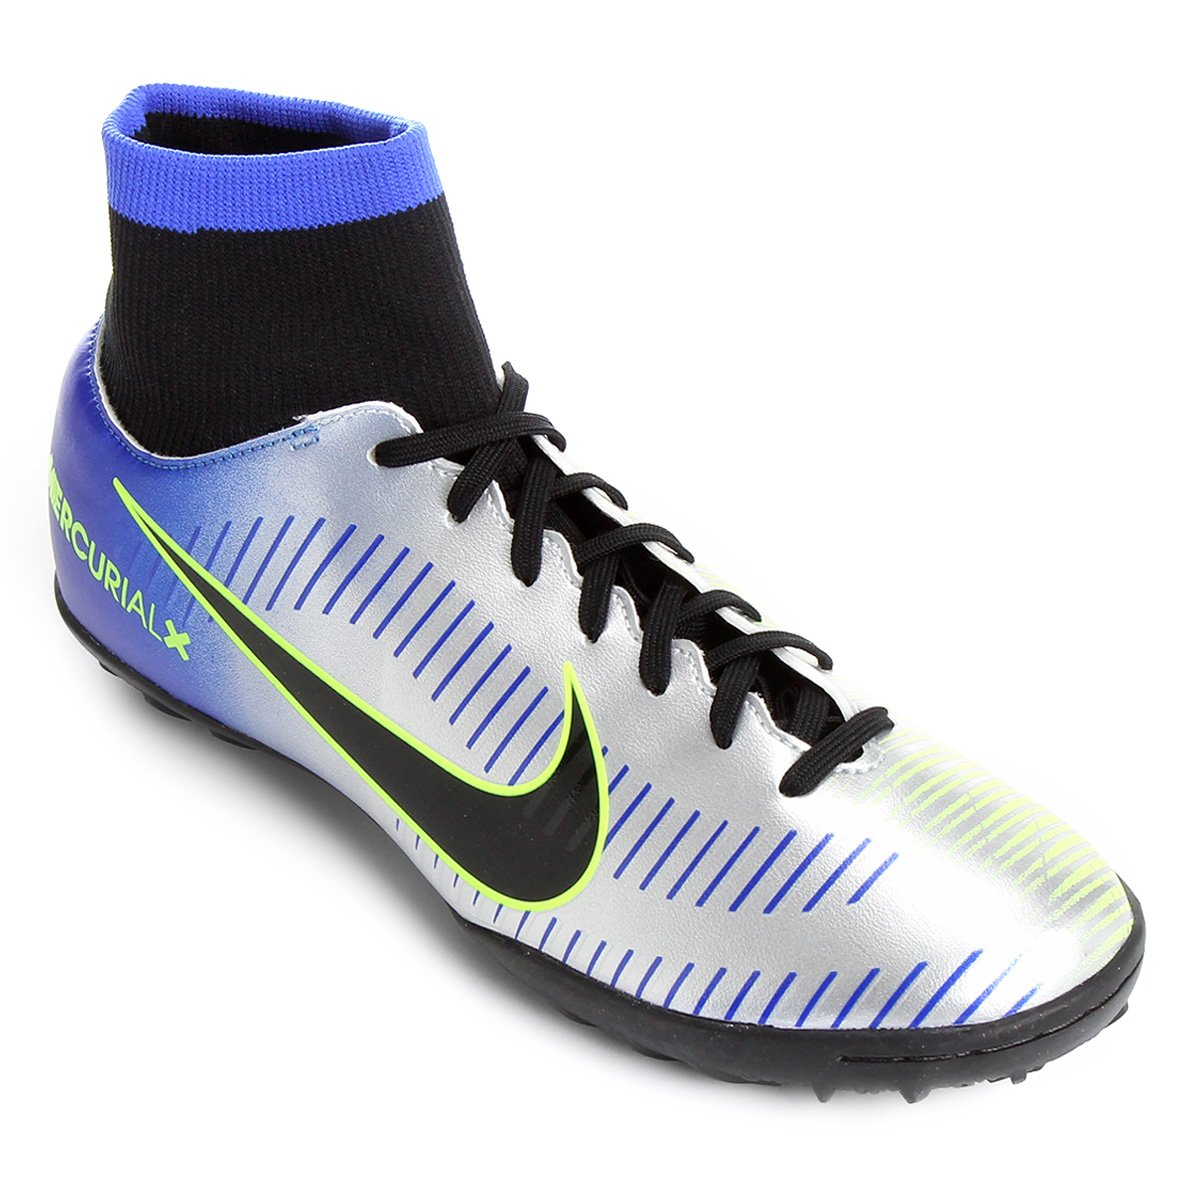 d36e7ae573af7 Chuteira Society Nike Mercurial Victory 6 DF Neymar Jr TF | Allianz Parque  Shop